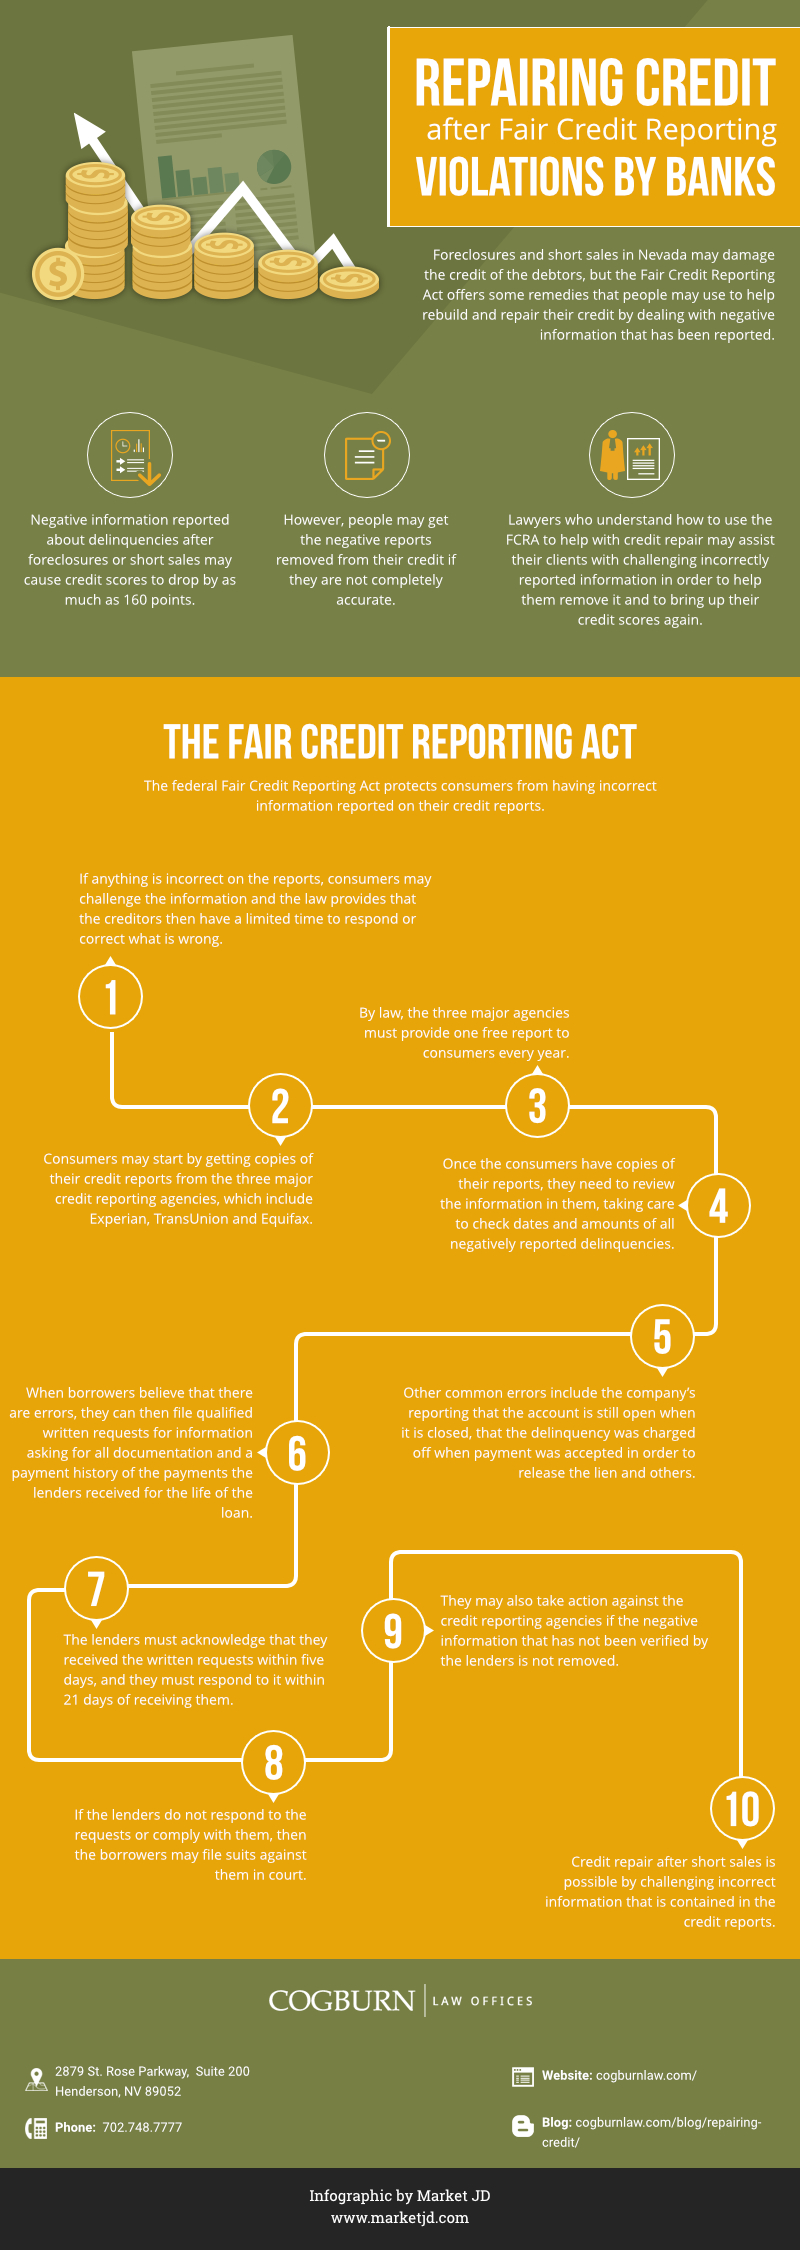 infographic_Repairing Credit after Bank Violations_Credit repair